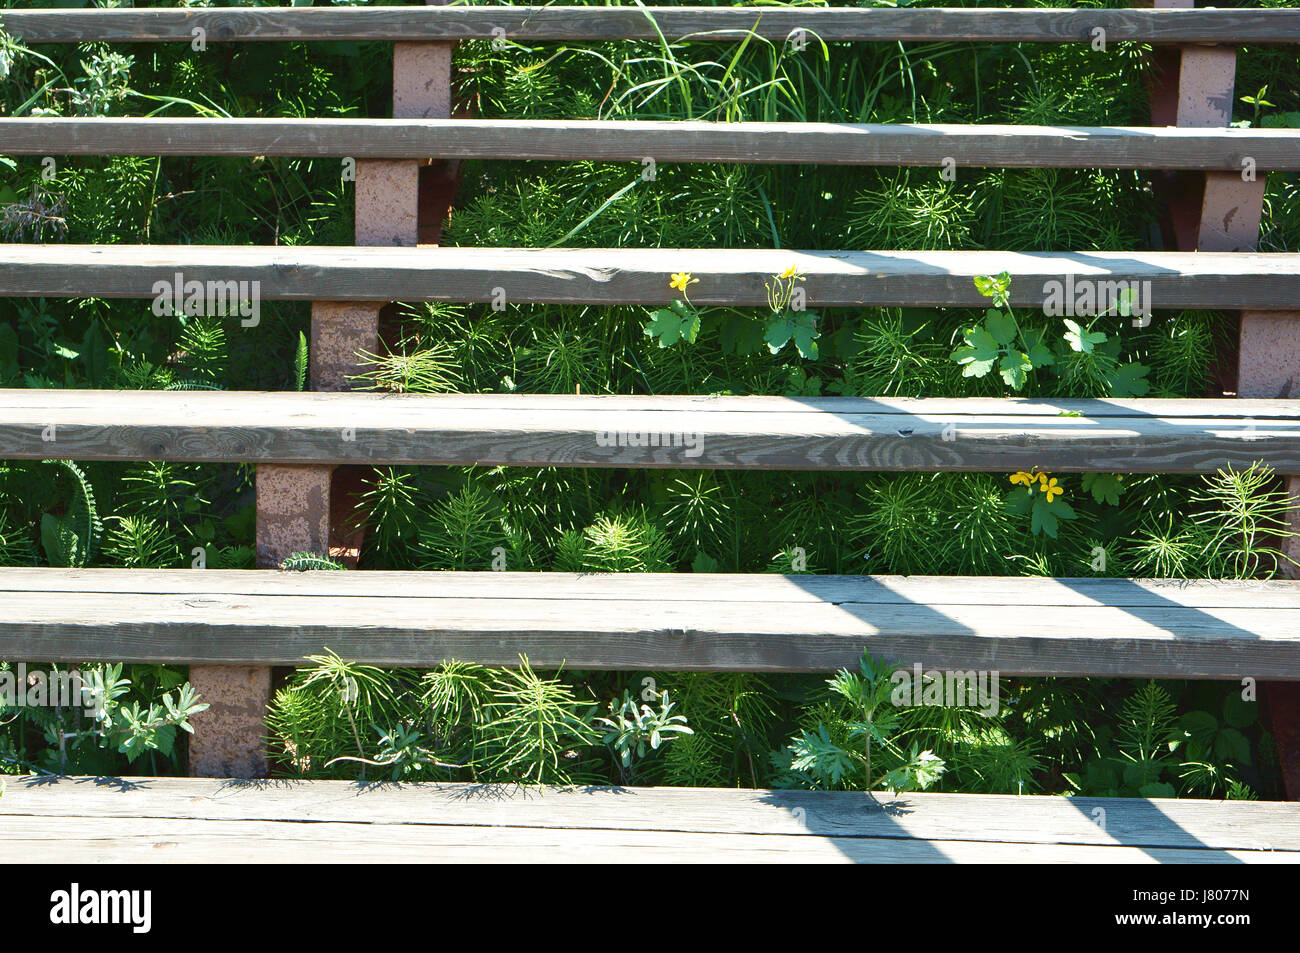 The stairs on the street have grown grass, and the plants are growing between stairs. - Stock Image